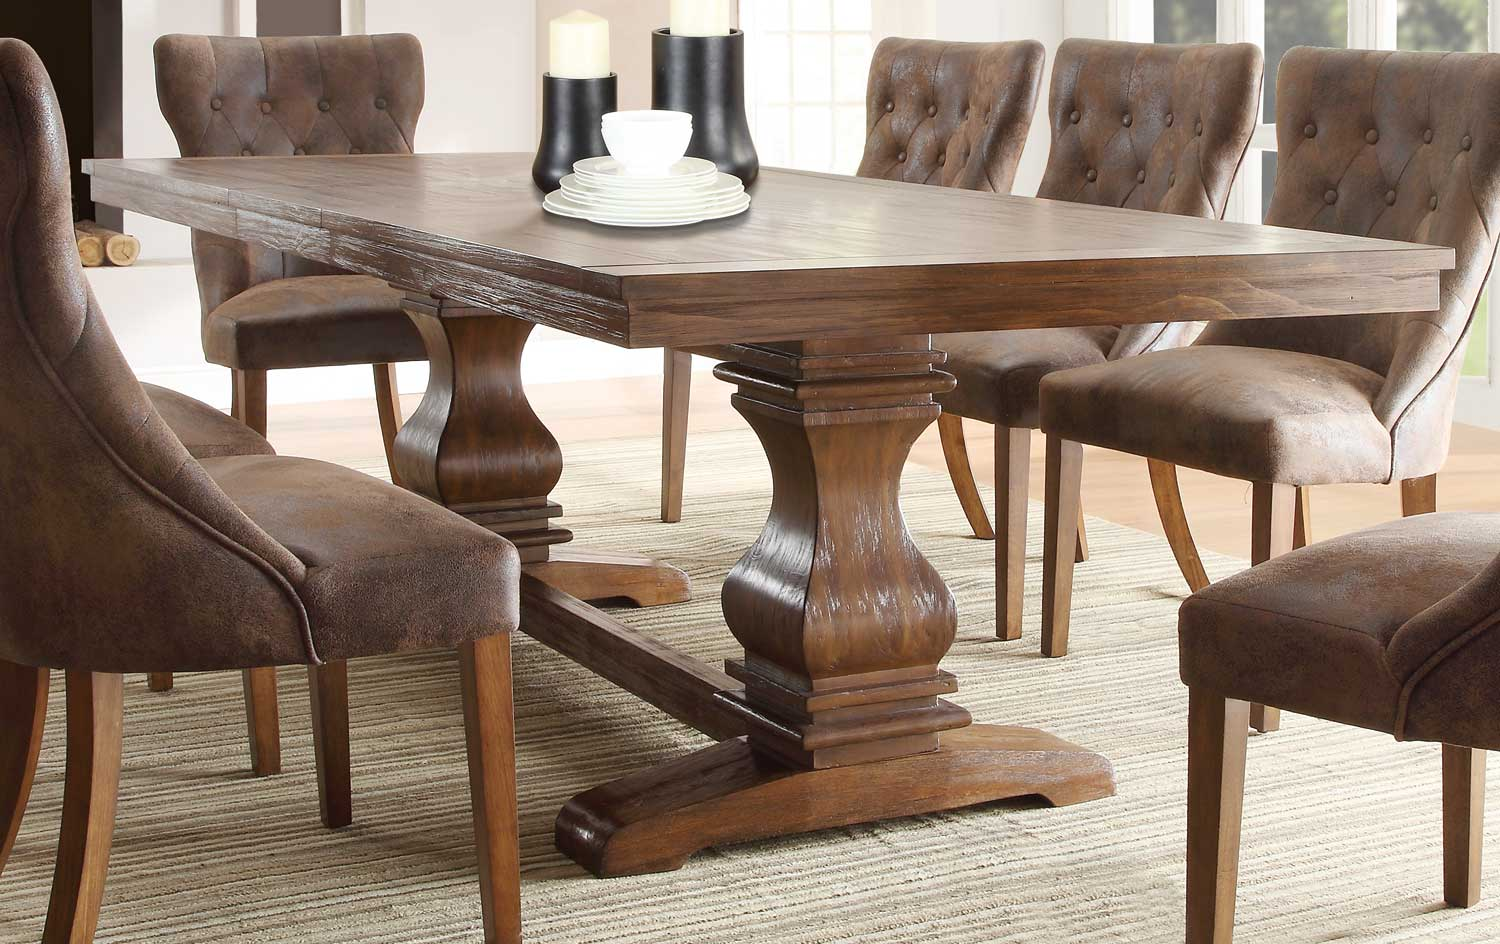 Homelegance marie louise dining table rustic oak brown for Rustic dining room sets